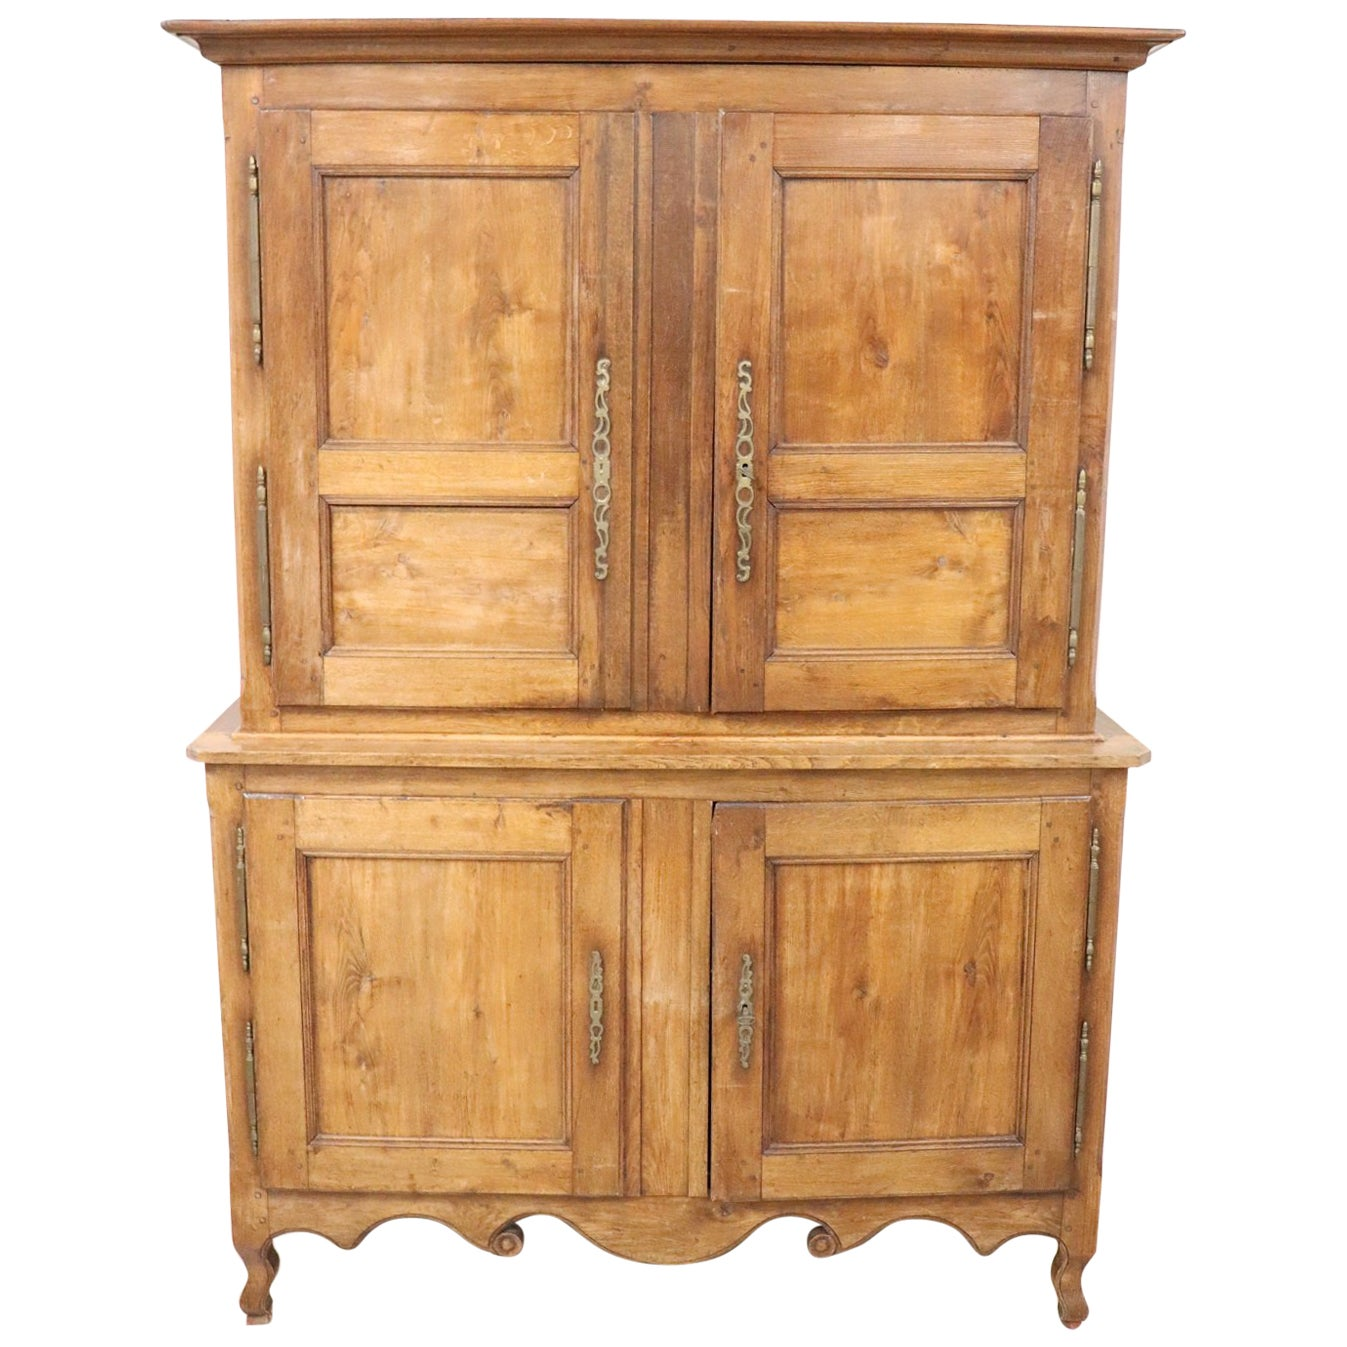 19th Century French Oak Wood Sideboard Or Buffet 1850s For Sale At